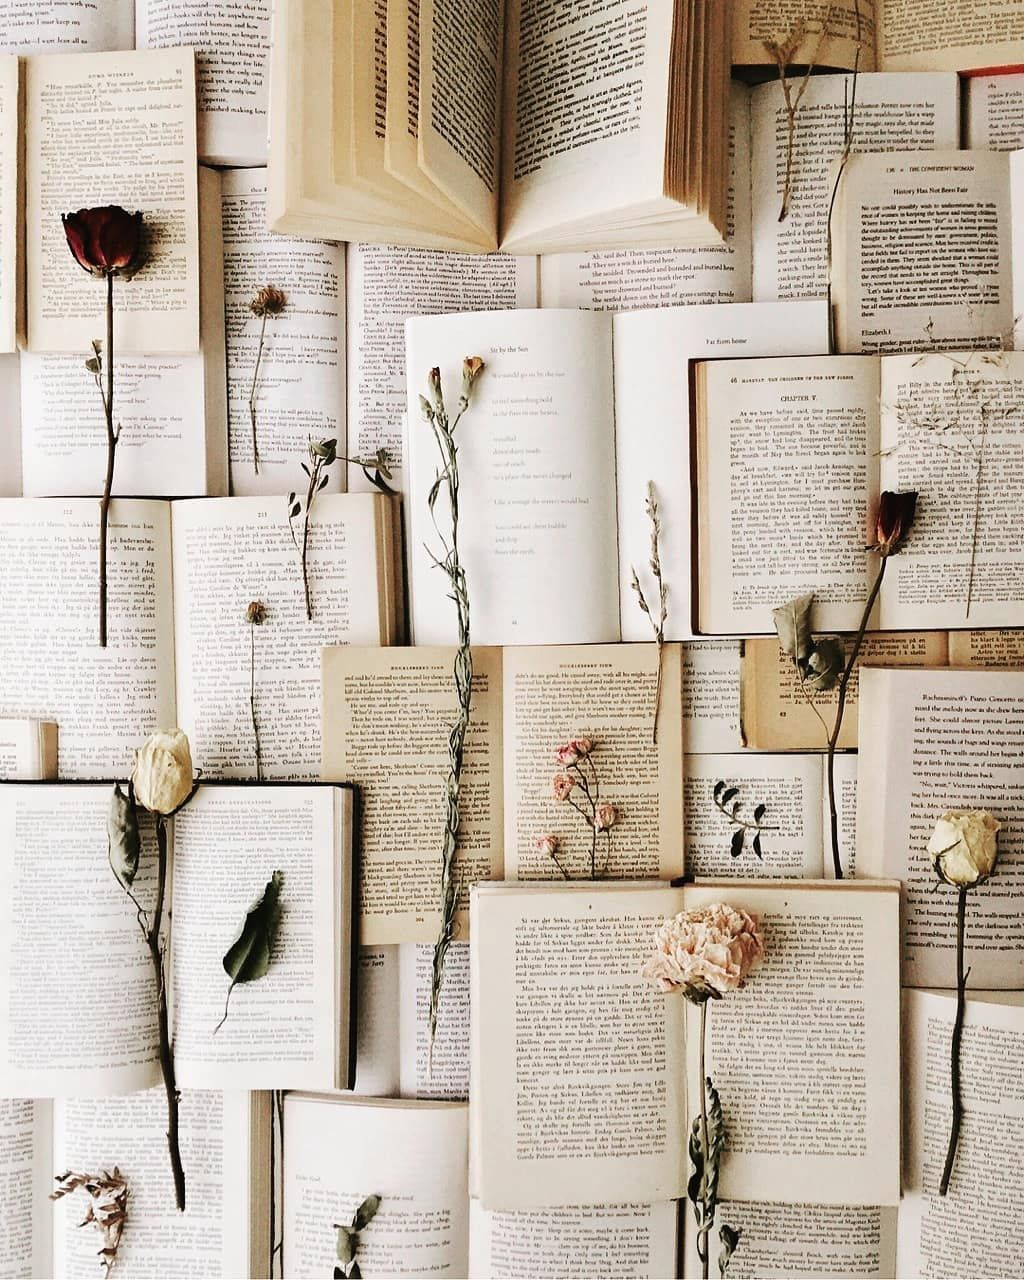 Books Dried Flowers Books Books Aesthetic Books To Read Bookshelf Dried Flowers In 2021 Book Wallpaper Book Aesthetic Aesthetic Iphone Wallpaper